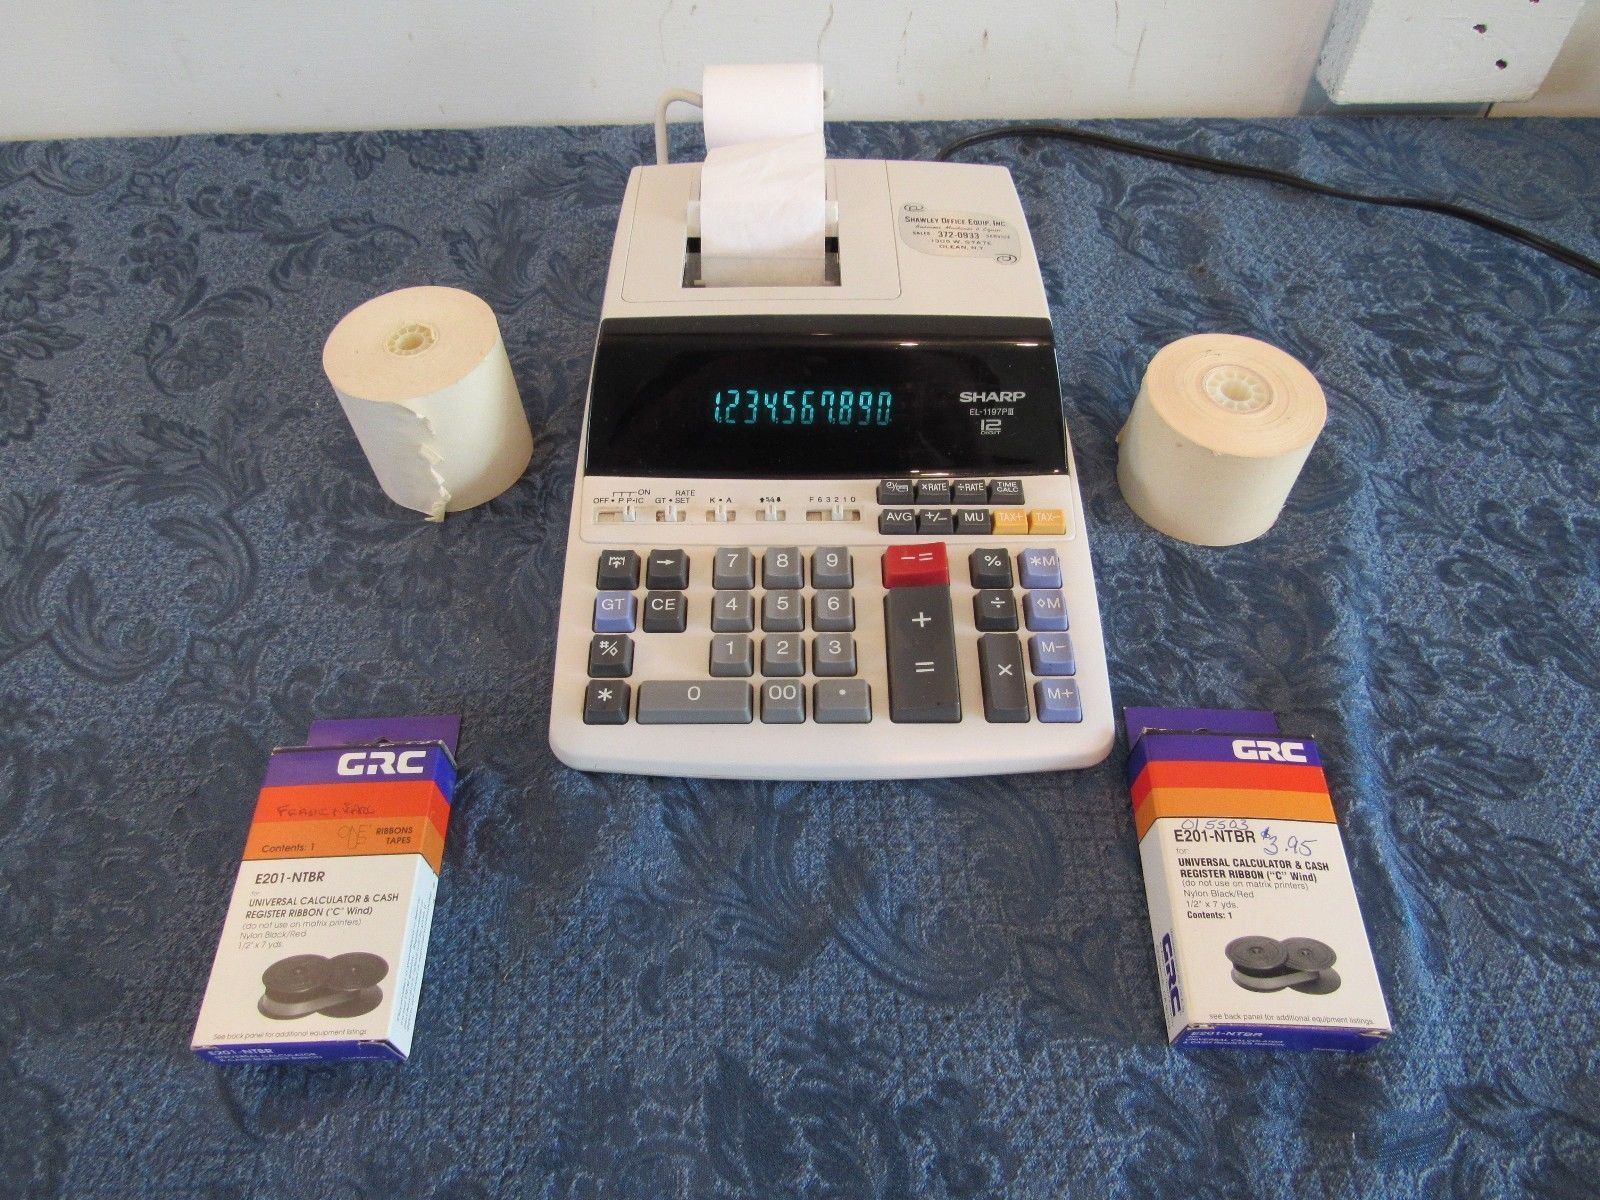 Sharp EL-1197III Heavy Duty 12-Digit Color Printing Calculator With Extras